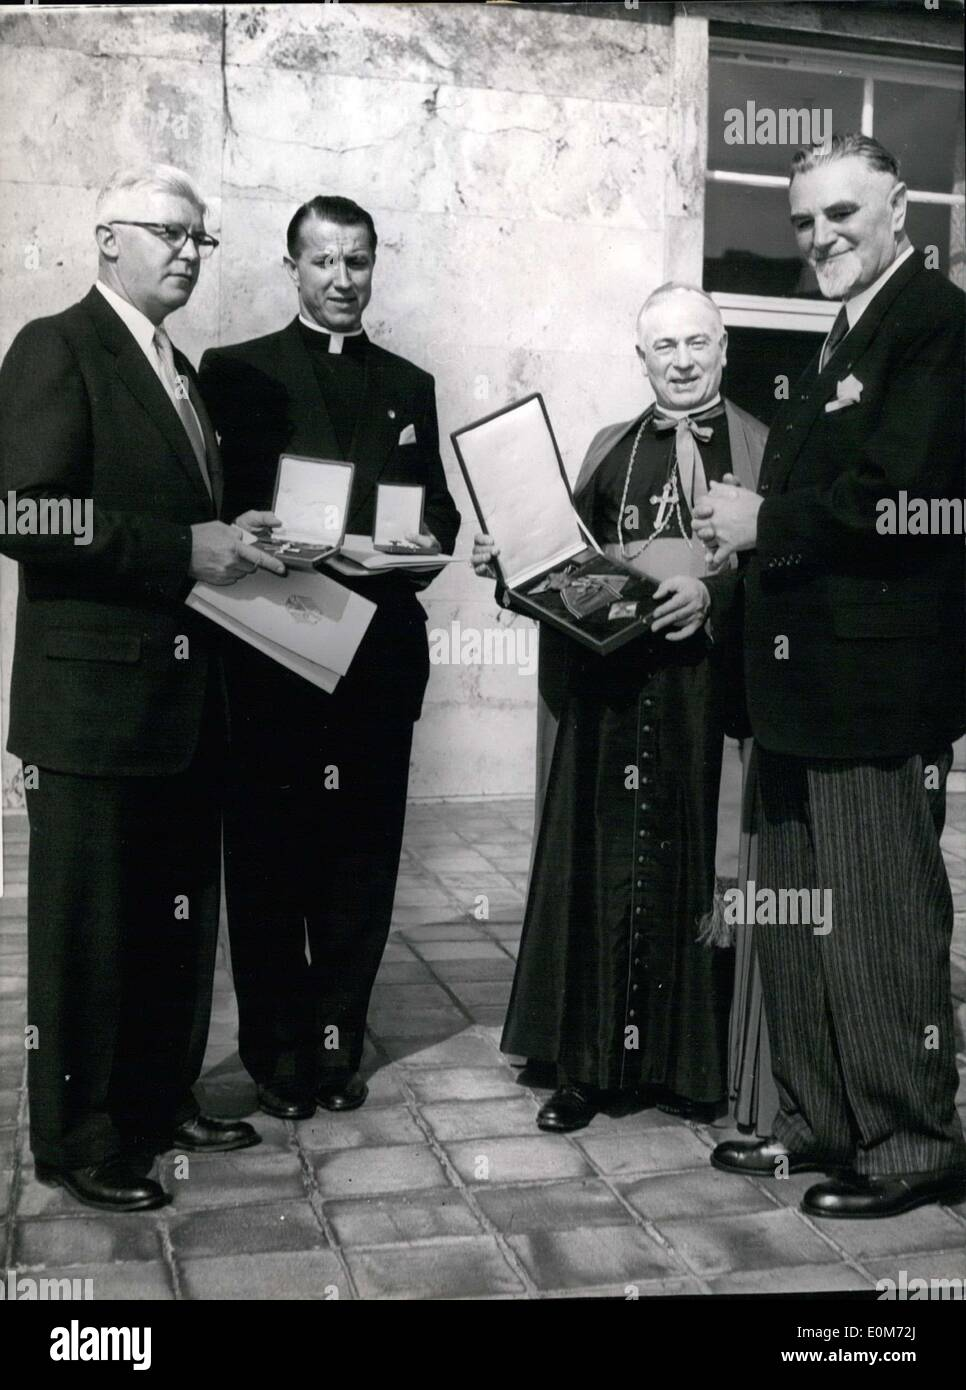 Sep. 26, 1953 - Bundesgovernment honours catholic priests from USA: Bundesminister Hans Lukaschek handels over by order of the Bundespresident the Bundesverdienst-crosses to three American Catholics, who did hart joined with a welfare-organisation for Germany. Photo shows (left) James J. Morris (european chief of the organisation to reduce war-cases), Alfred J. Schneider (director of this organisation), Arc-bishop Karl J. Alter, Cincinna ti, (Chairman of the curatorium of the organisation) - Stock Image